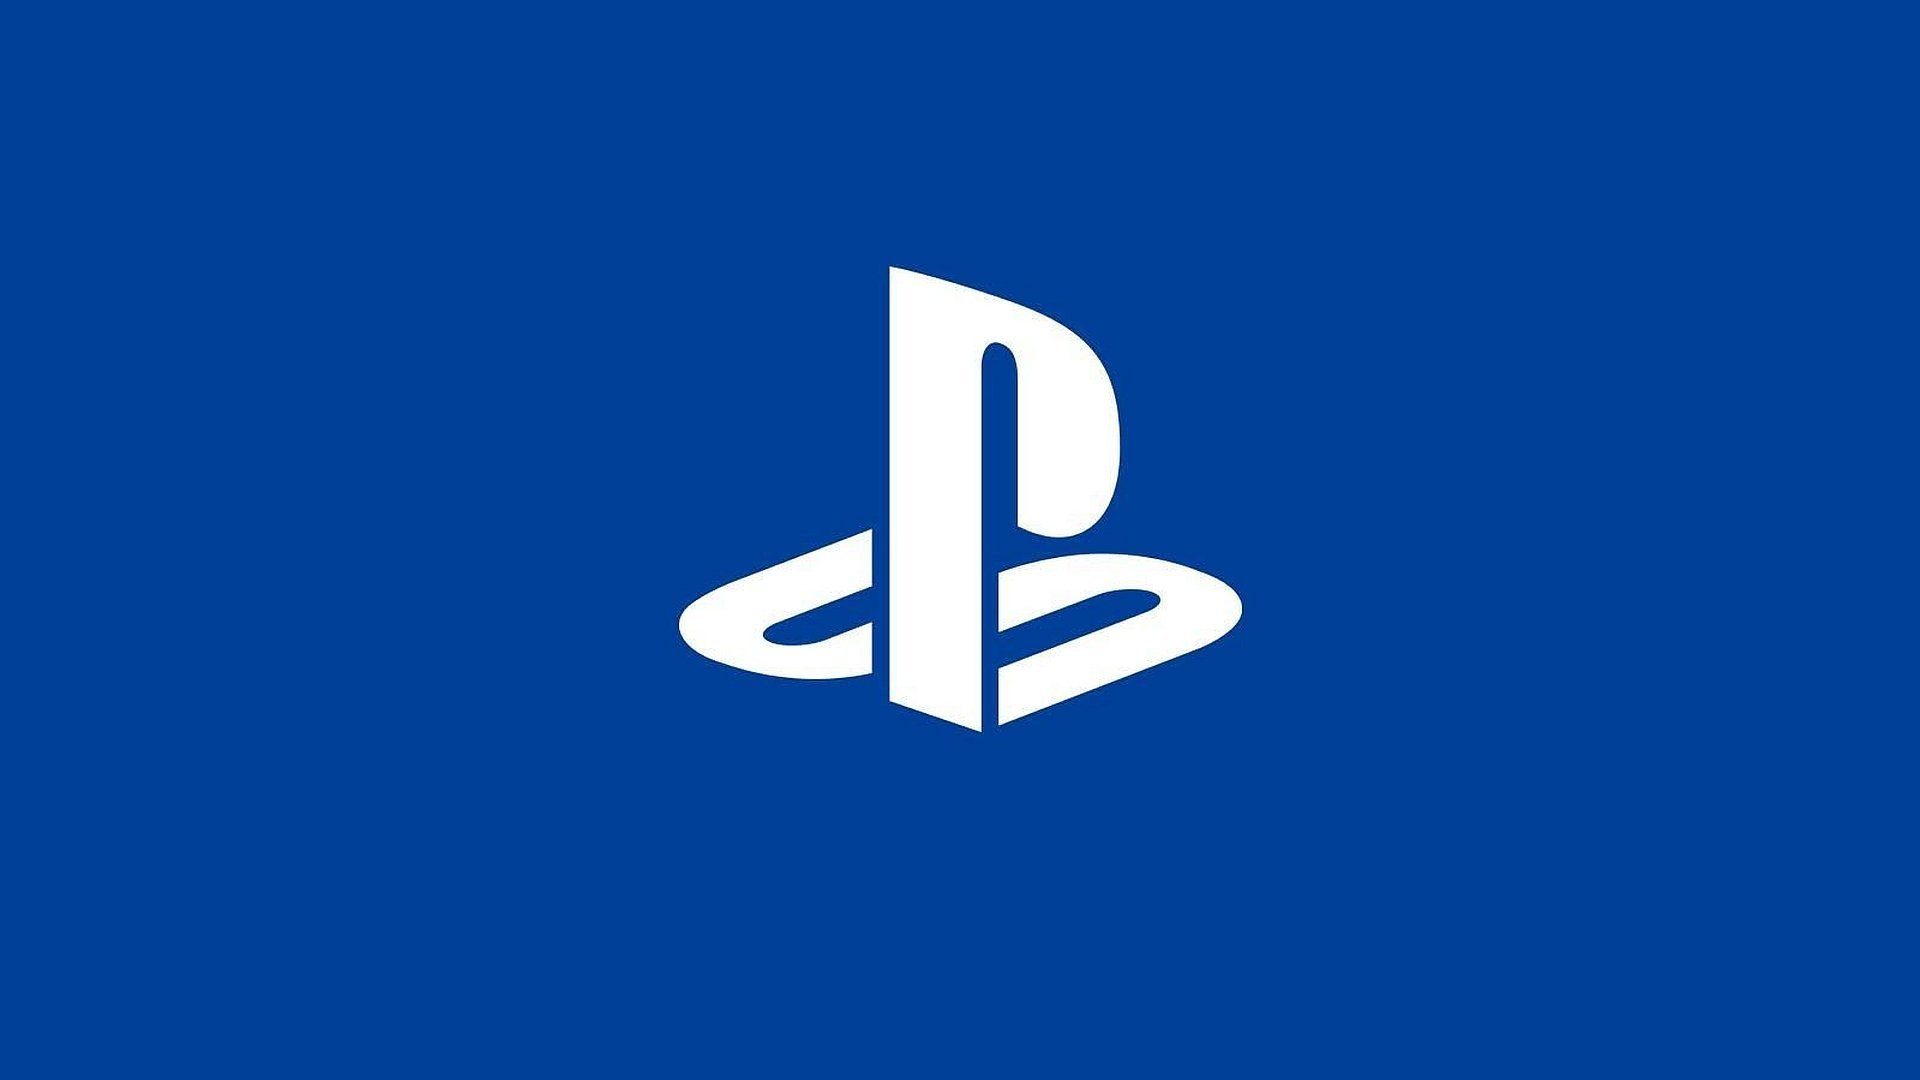 PS4 worldwide shipments top 94.2 million